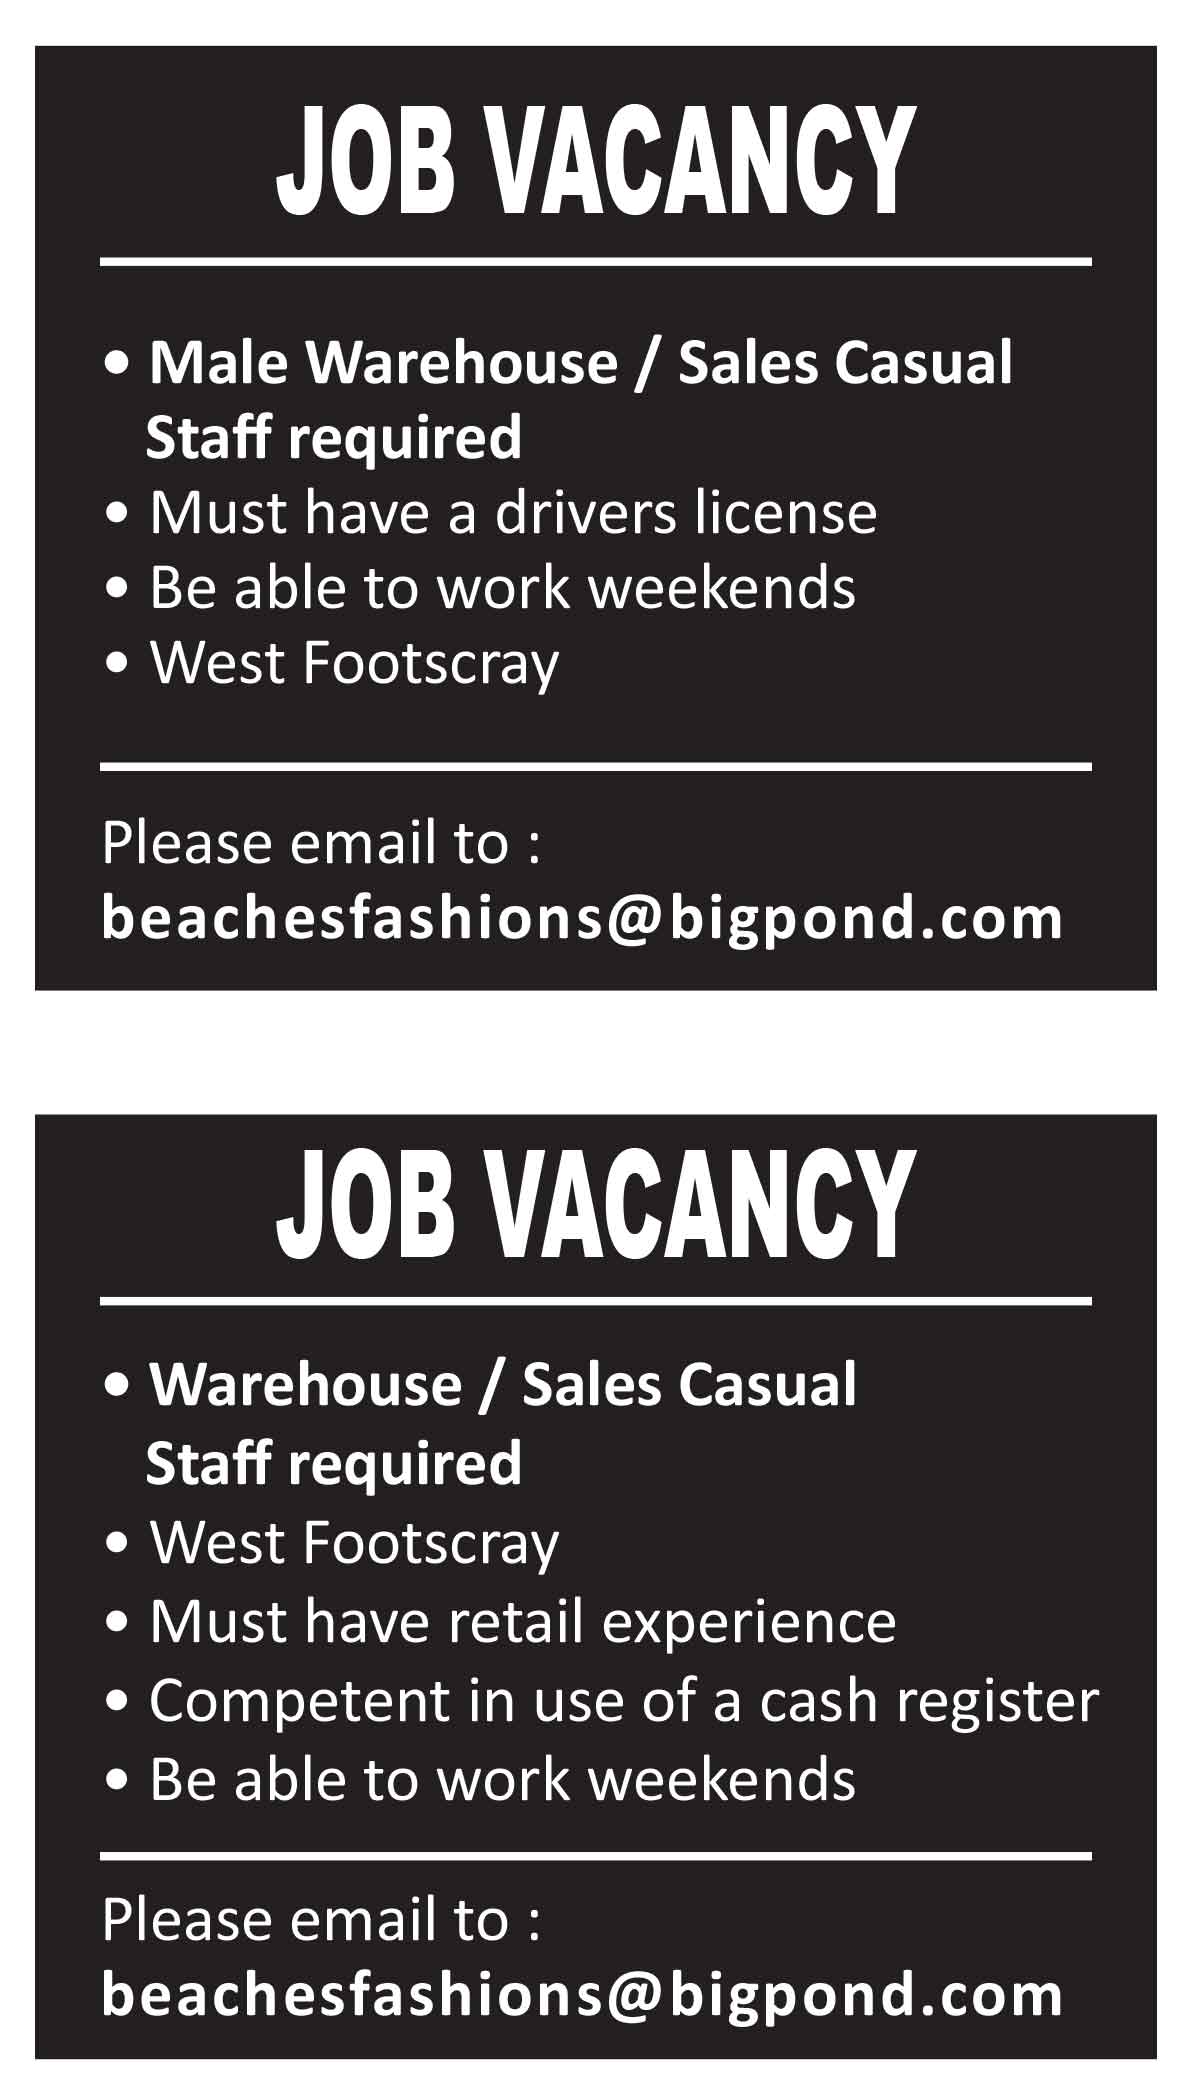 JOB-VACANCY---BEACHES-FASHION---NOV17